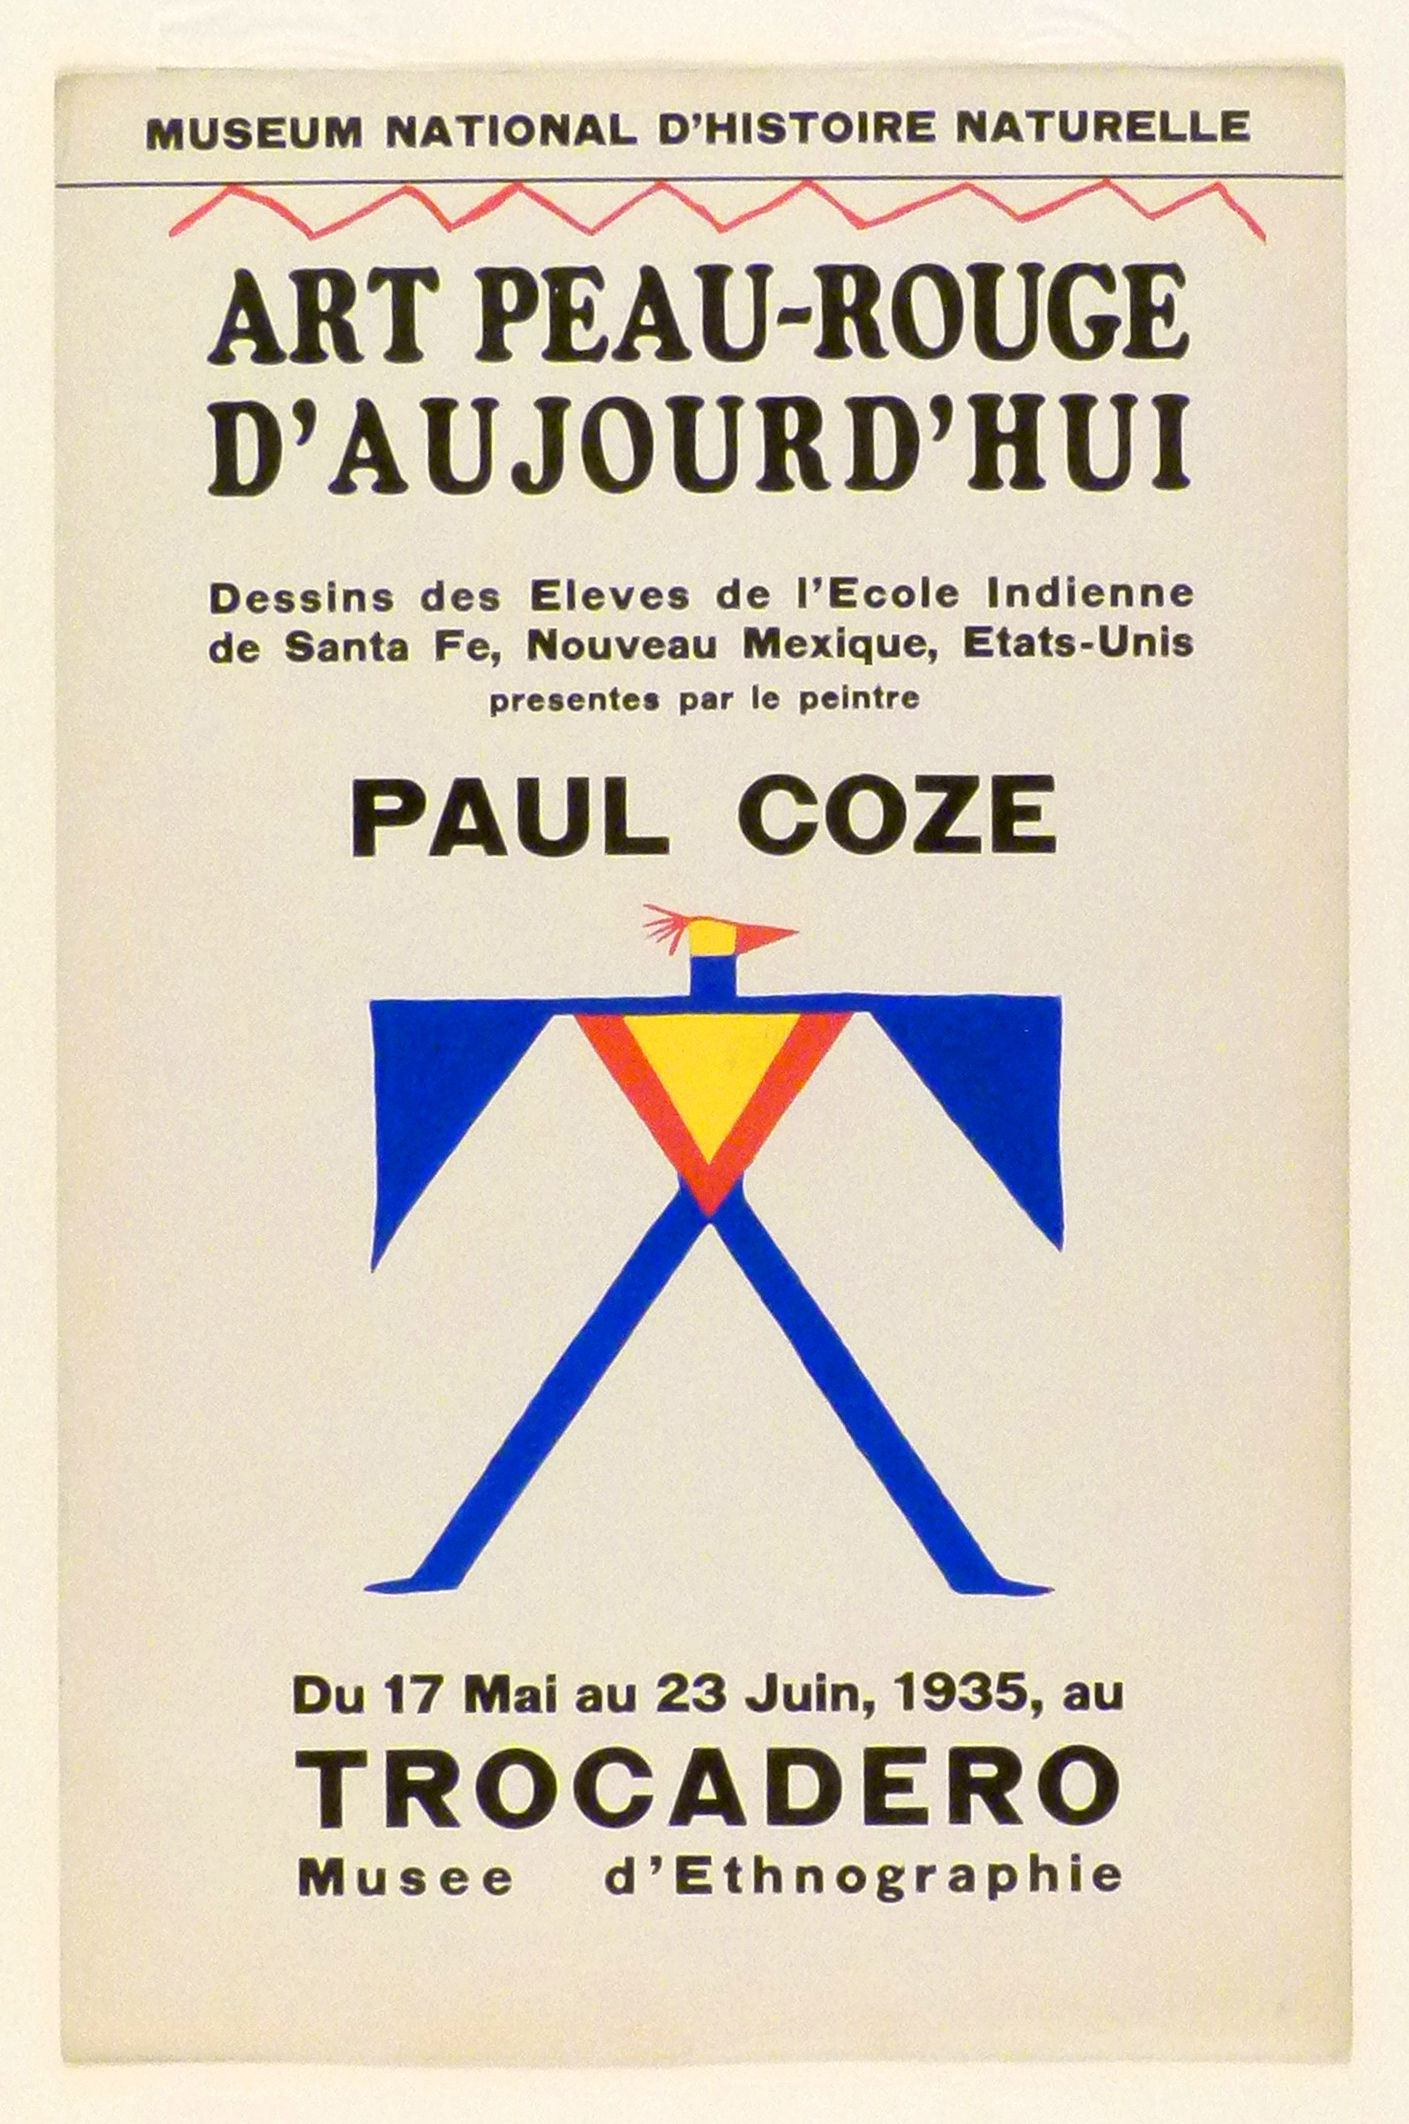 Art Exhibition Poster with painting of bird-like geometric design with outstretched blue legs and wings and a red and yellow torso and head.